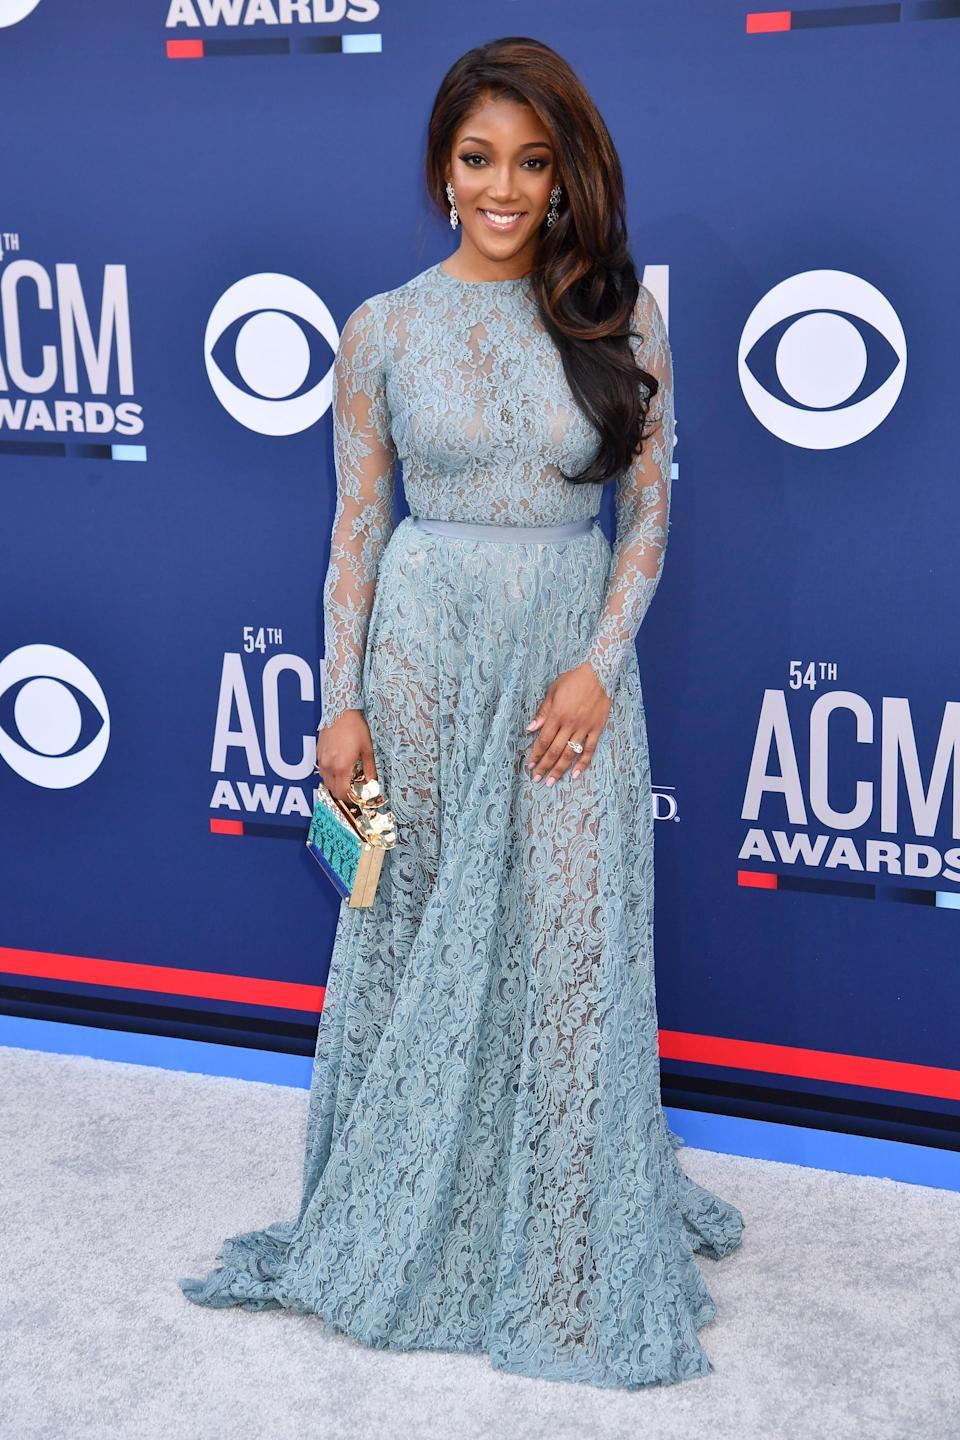 ACM Awards 2019: See the Best-Dressed Country Stars from